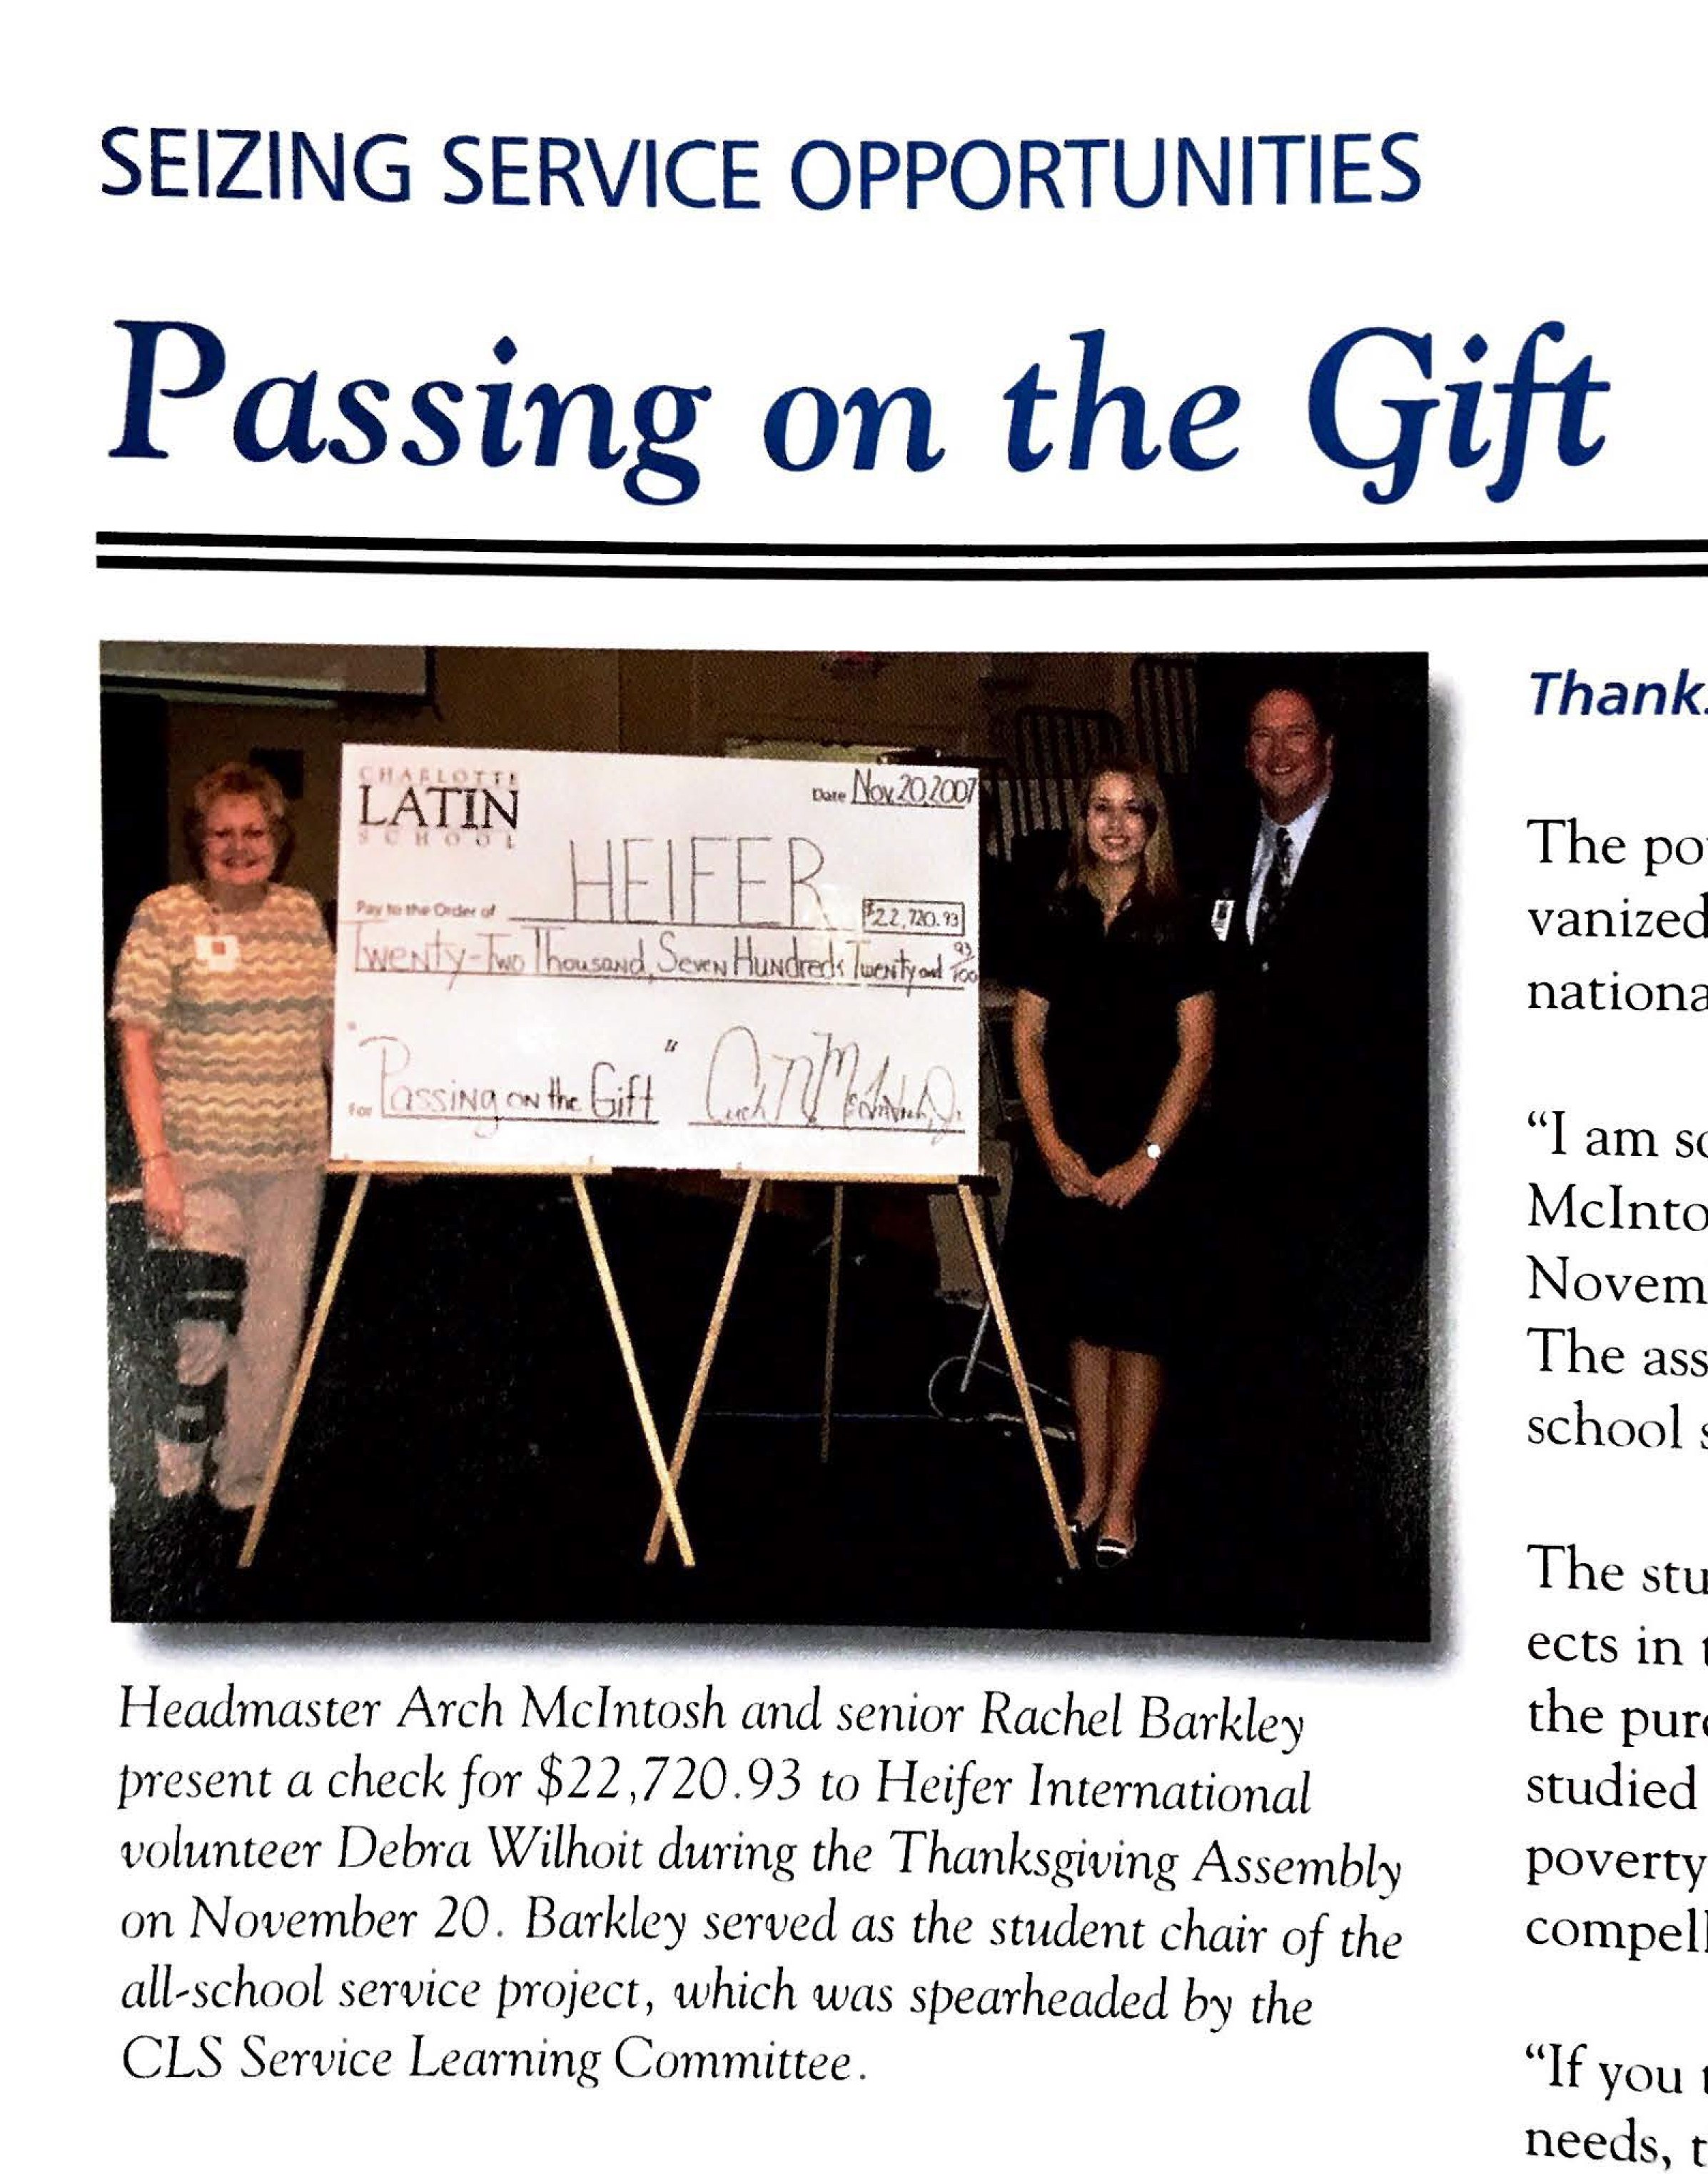 In 2007, CLS raised more than $22K for Heifer International.